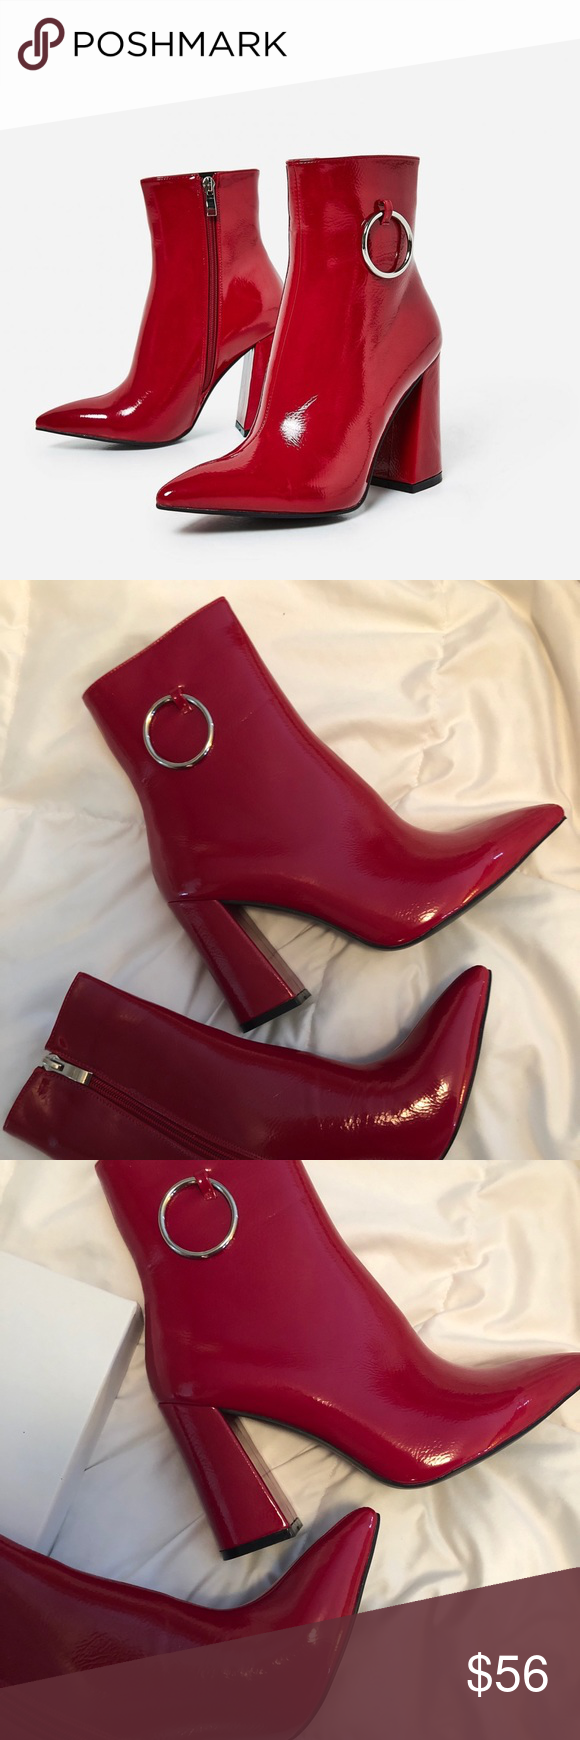 eef17610d75 Ego Red Patent Boots